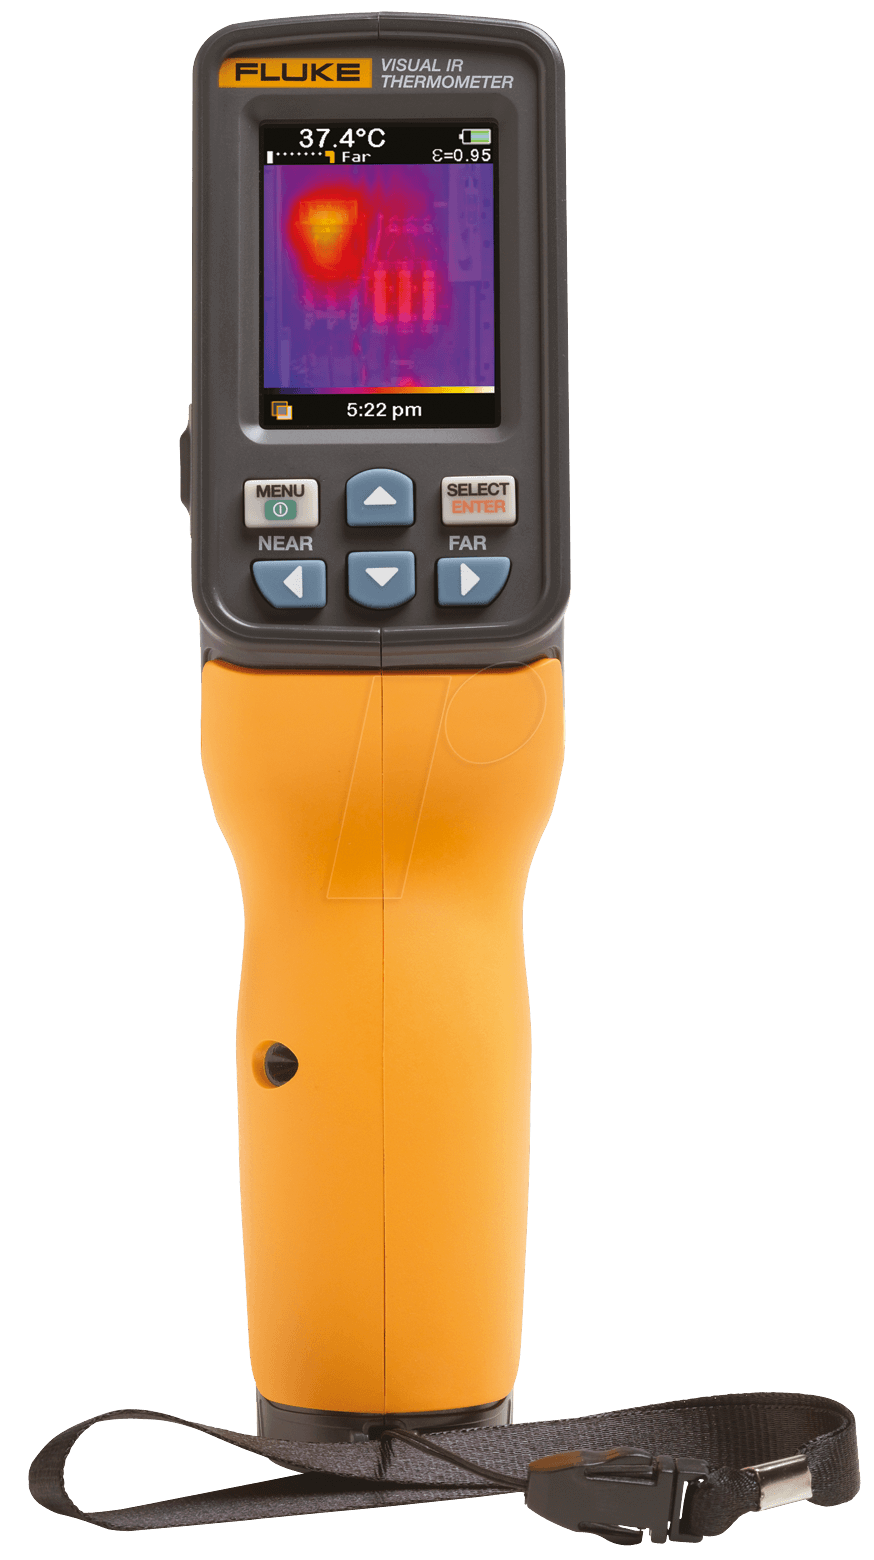 Moisture Probe For Fluke Multimeter : Fluke vt visual ir thermometer at reichelt